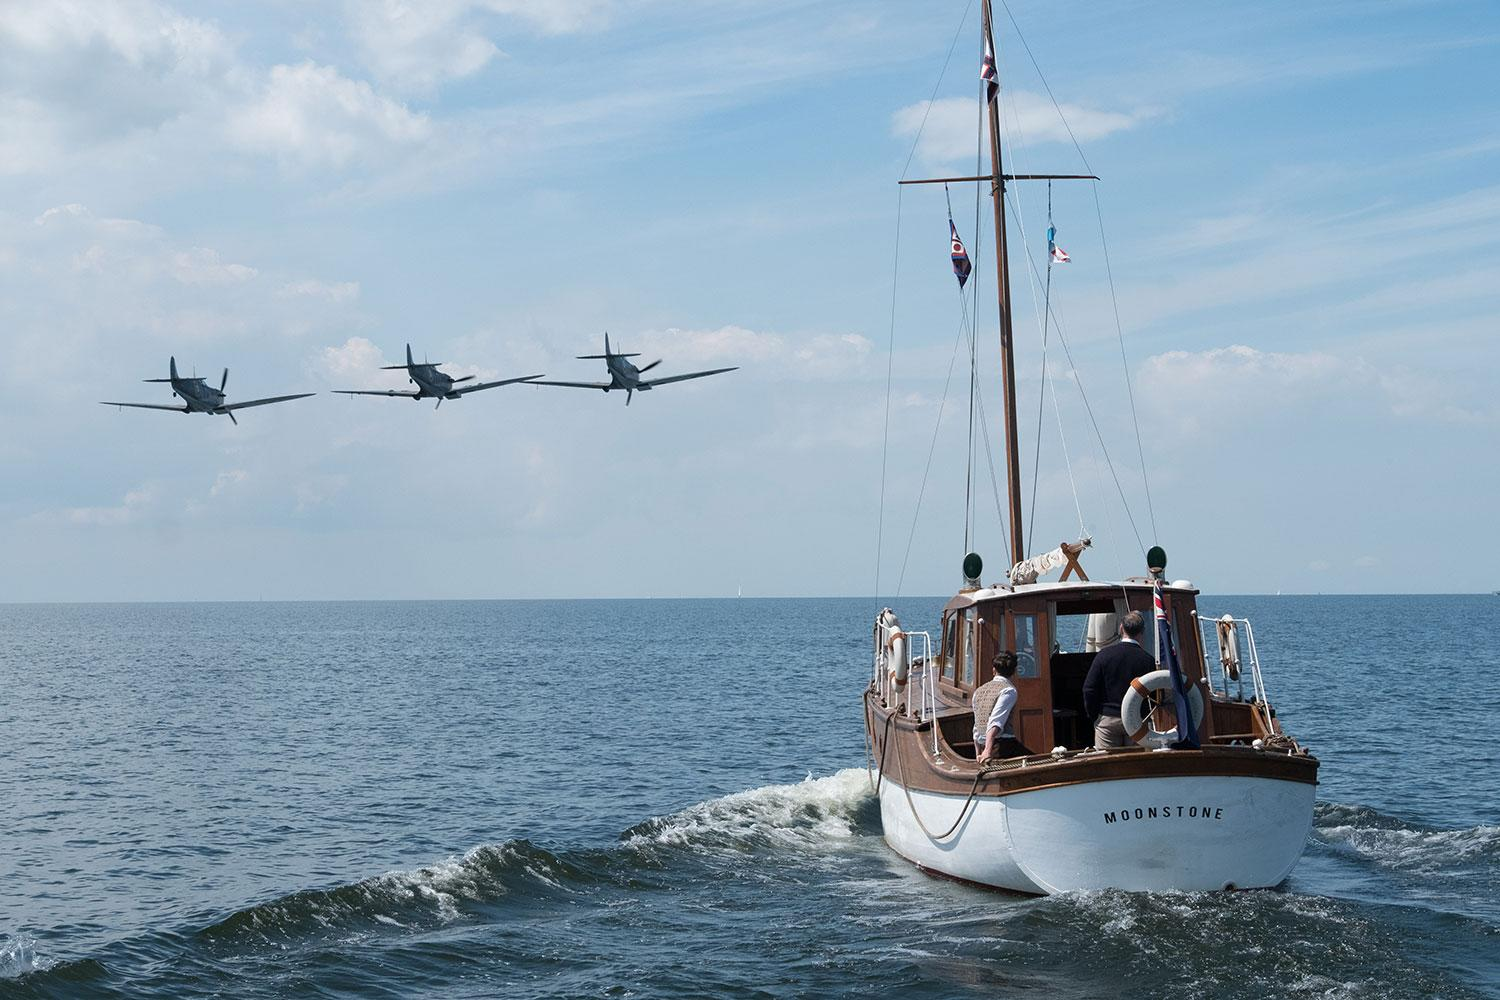 Christopher Nolan sourced real boats, planes, and vehicles for 'Dunkirk' (WB)